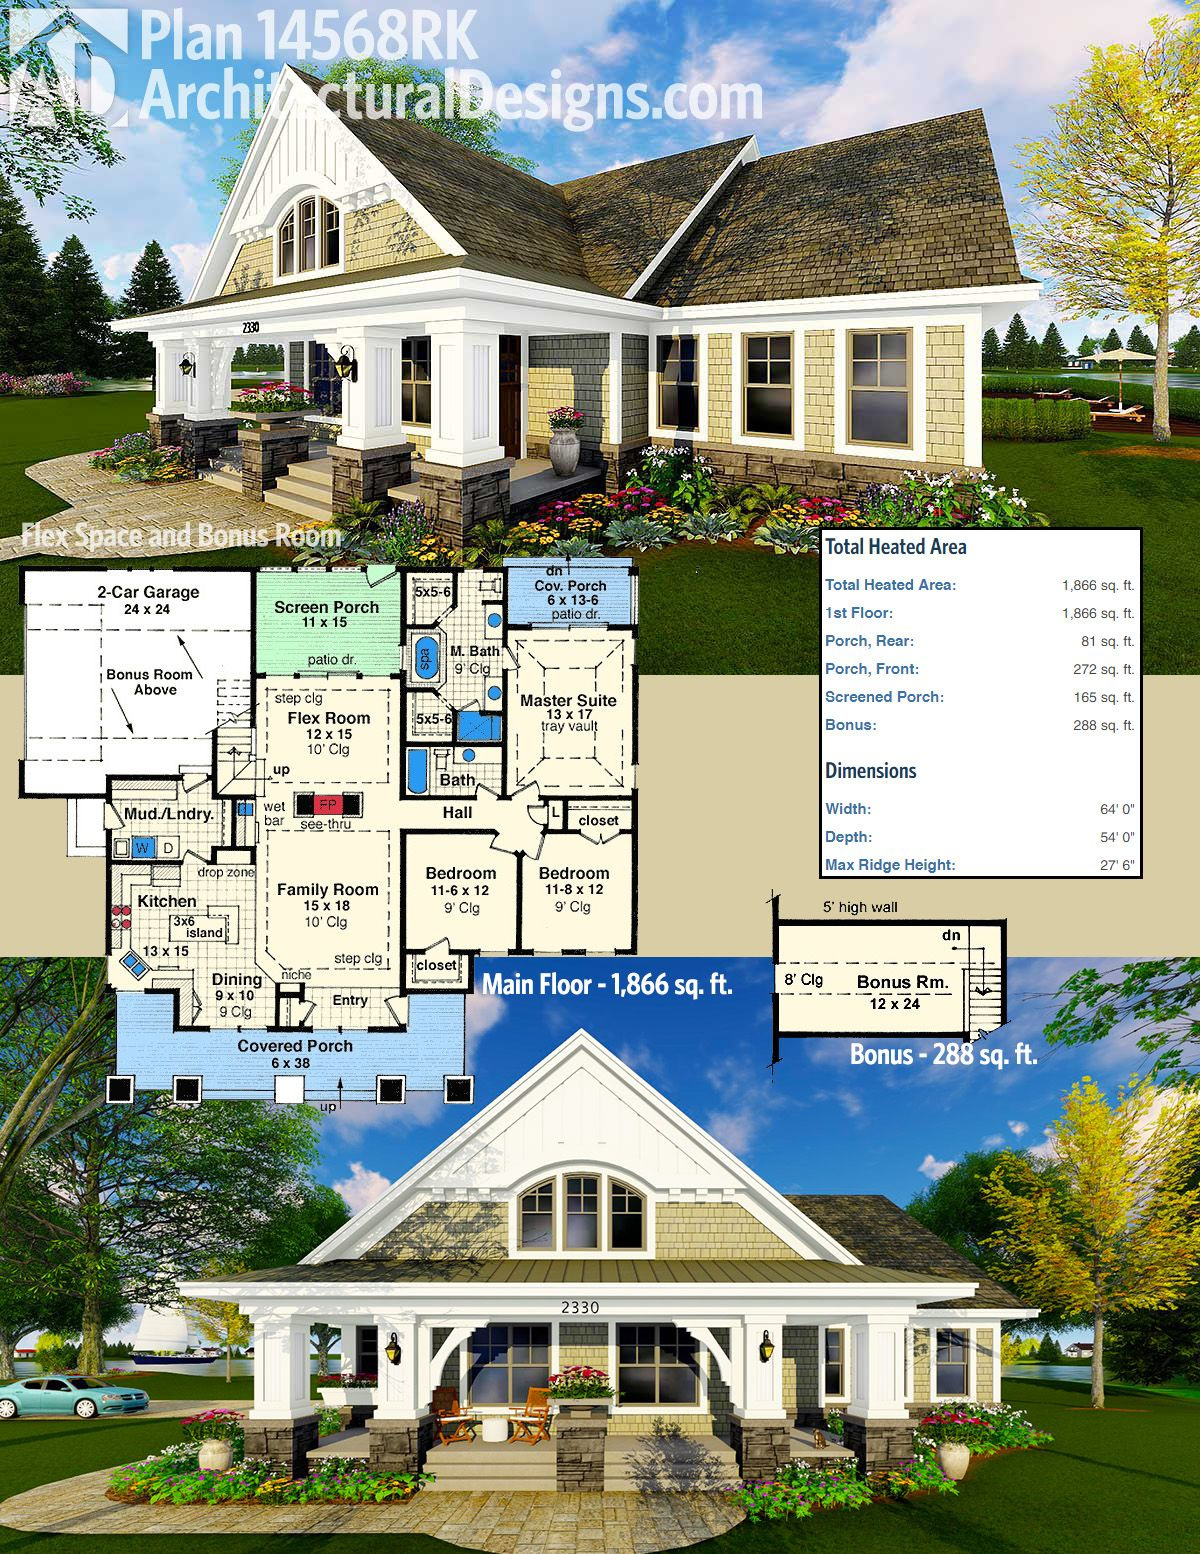 Architectural Designs Craftsman House Plan has a